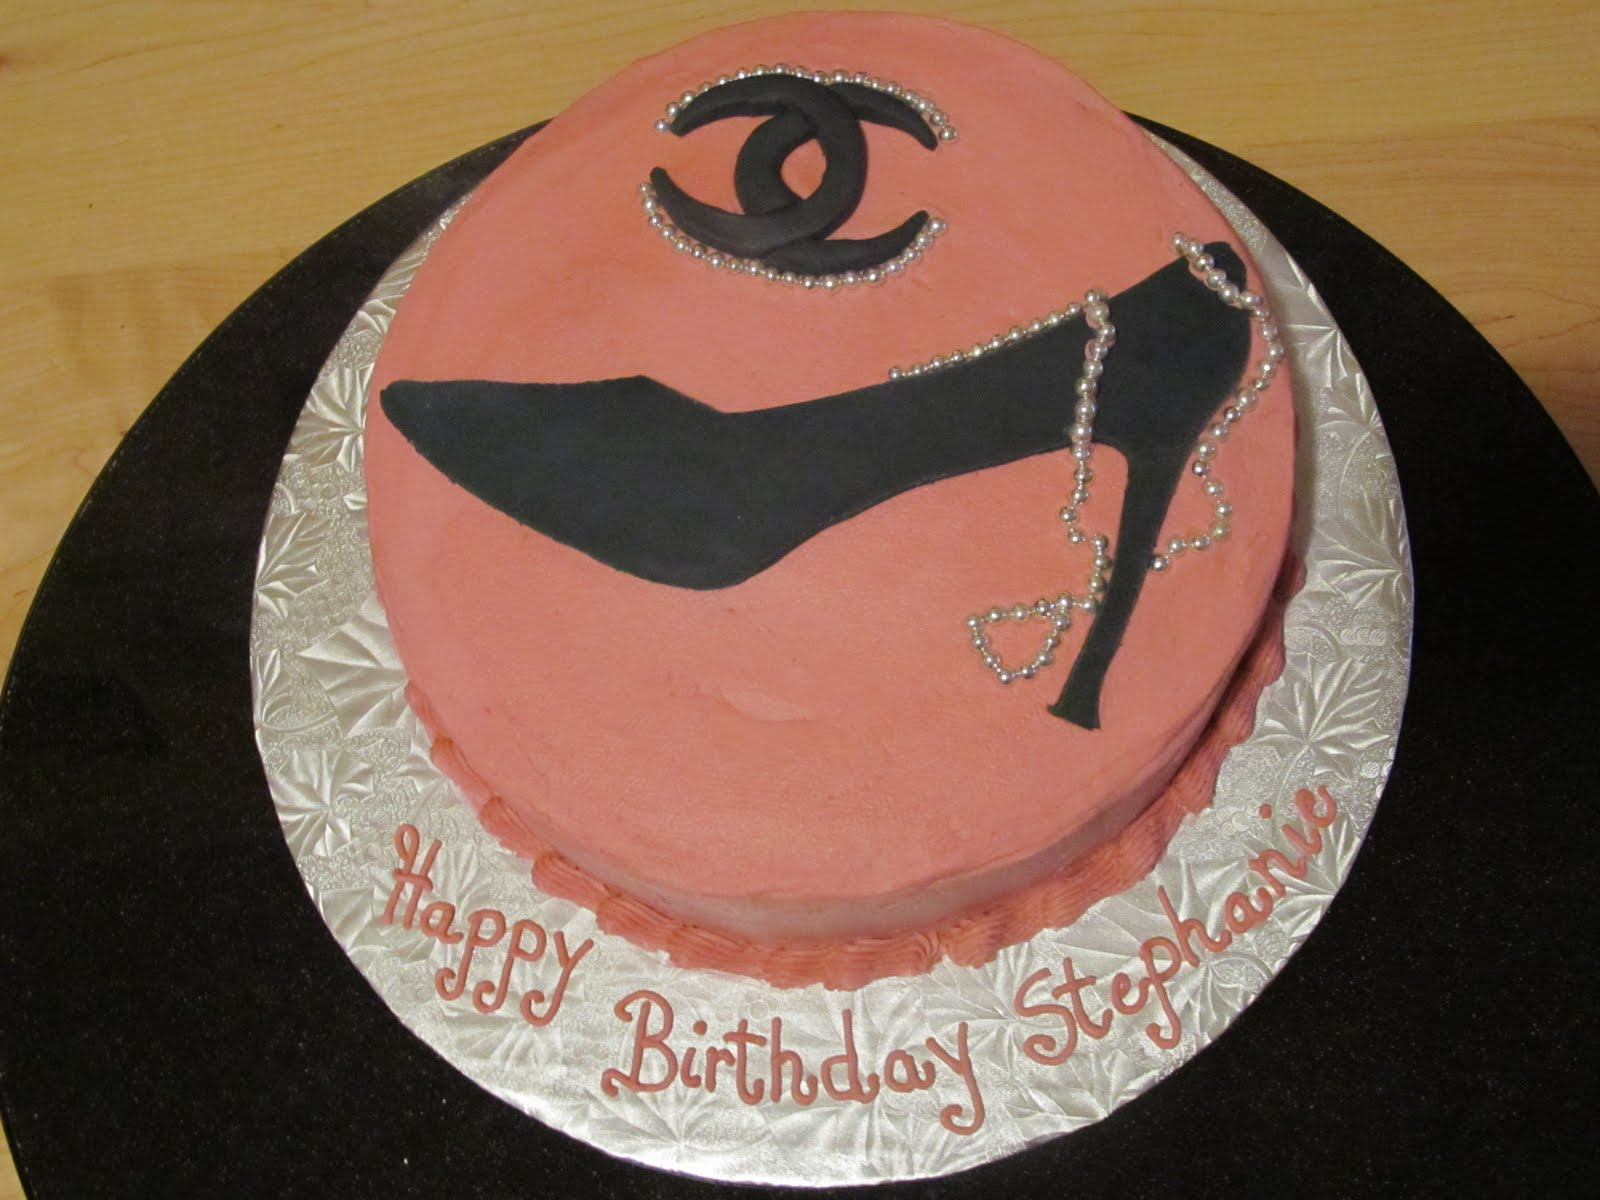 Cake Designs by Steph: Chanel logo & Silhouette of Shoe Cake!